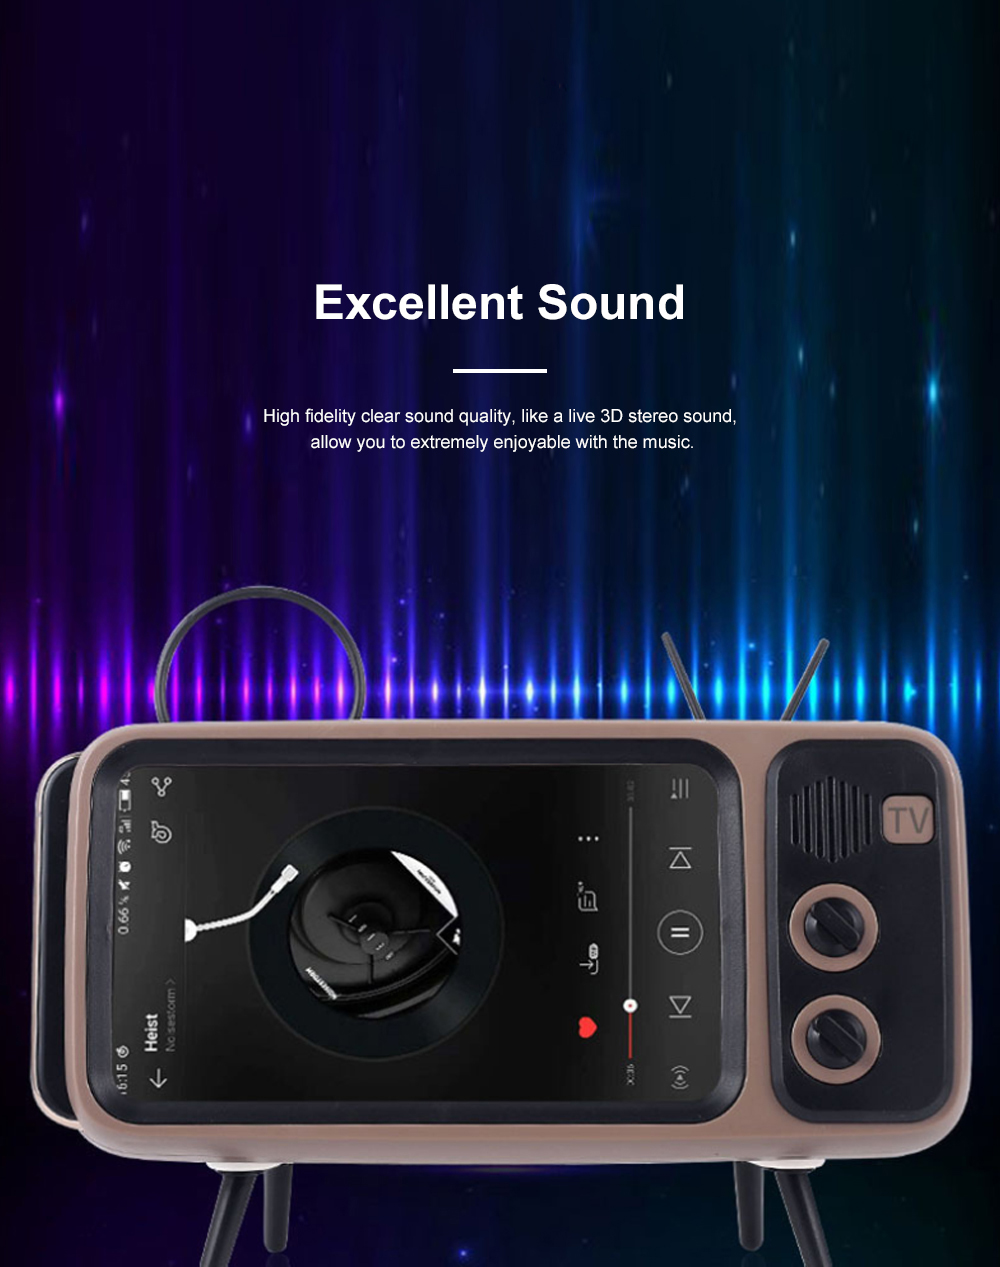 Retro Bluetooth Speaker Portable Wireless Stereo Speaker Old Fashioned Classic TV Style Music Player Phone Stand Mount 1